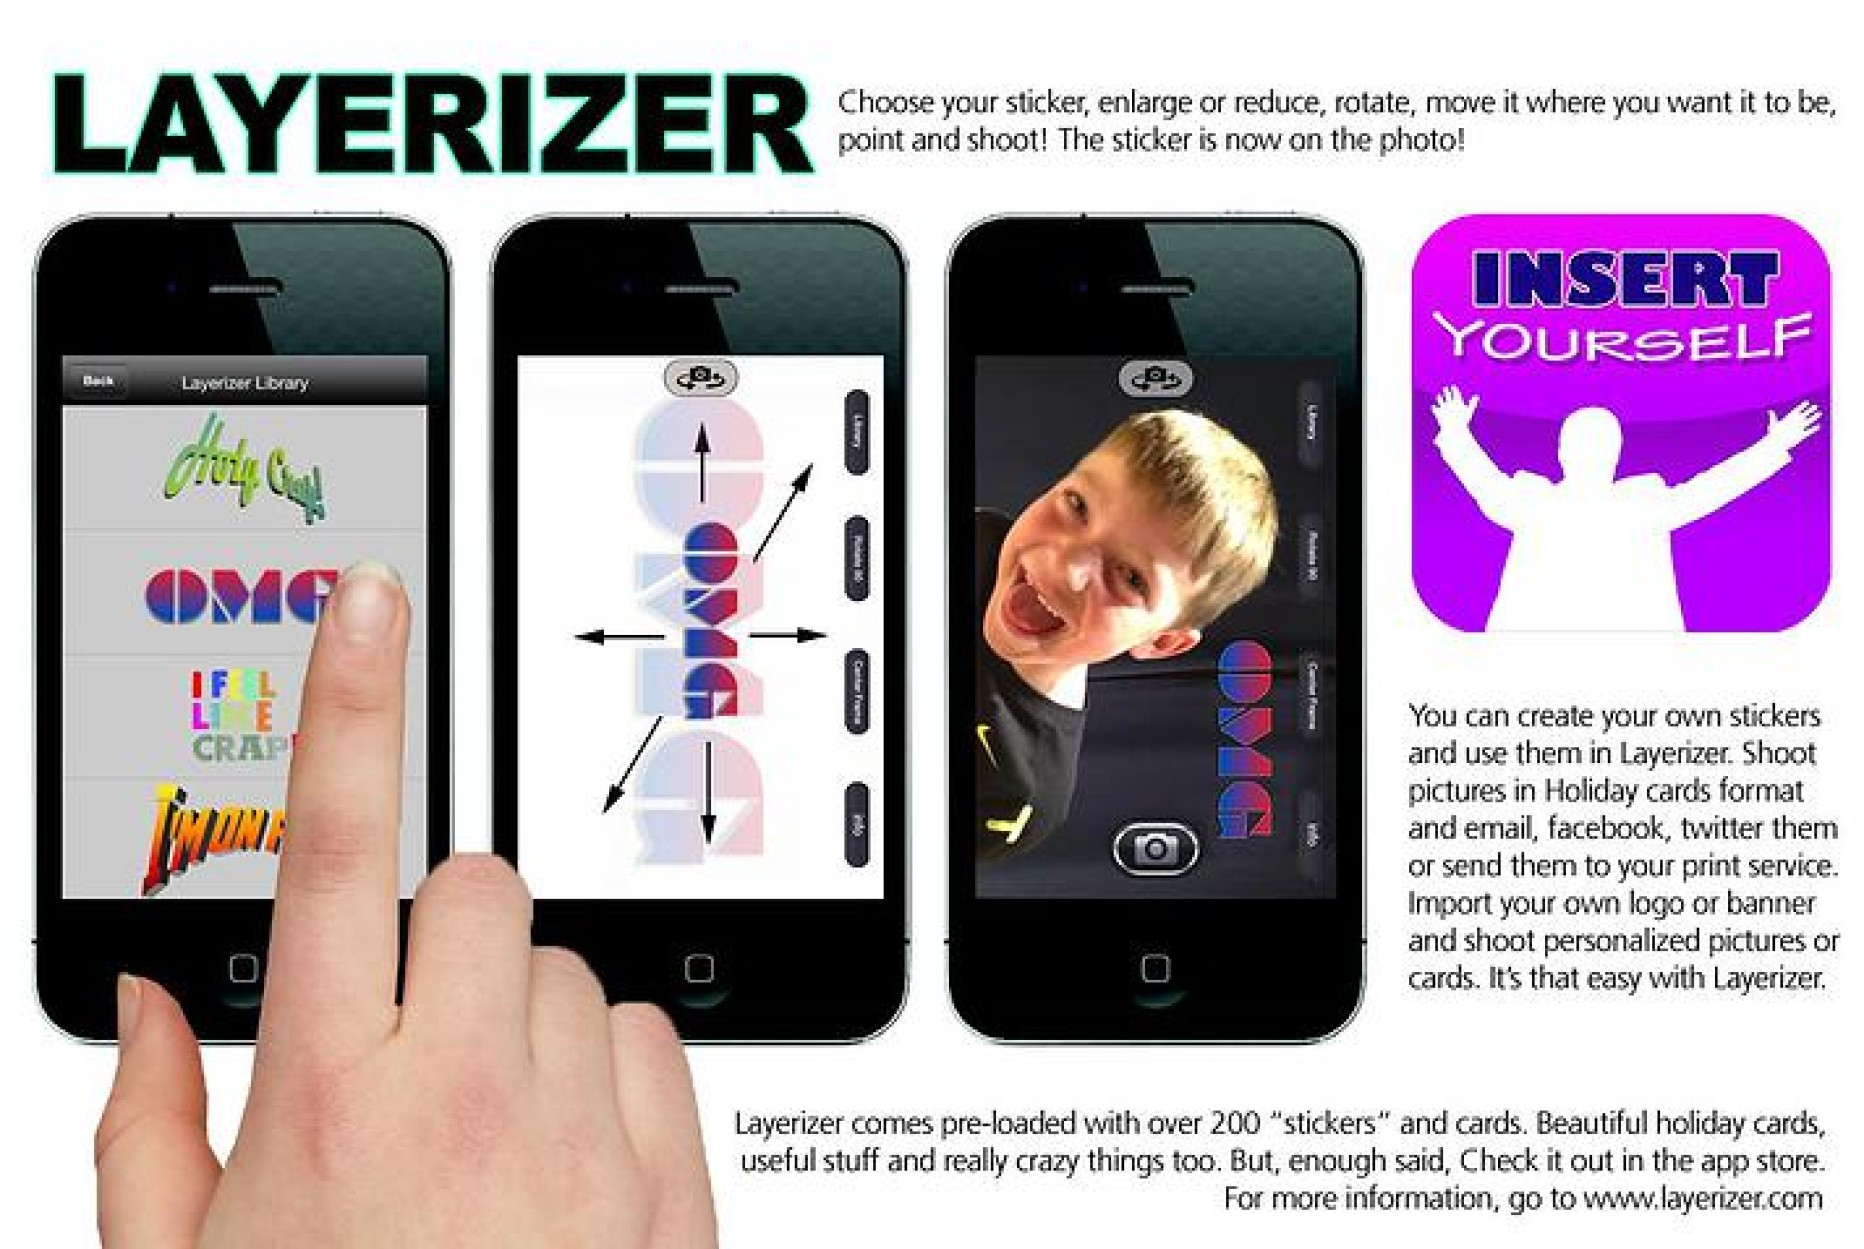 Try out different photographic embellishments with Layerizer